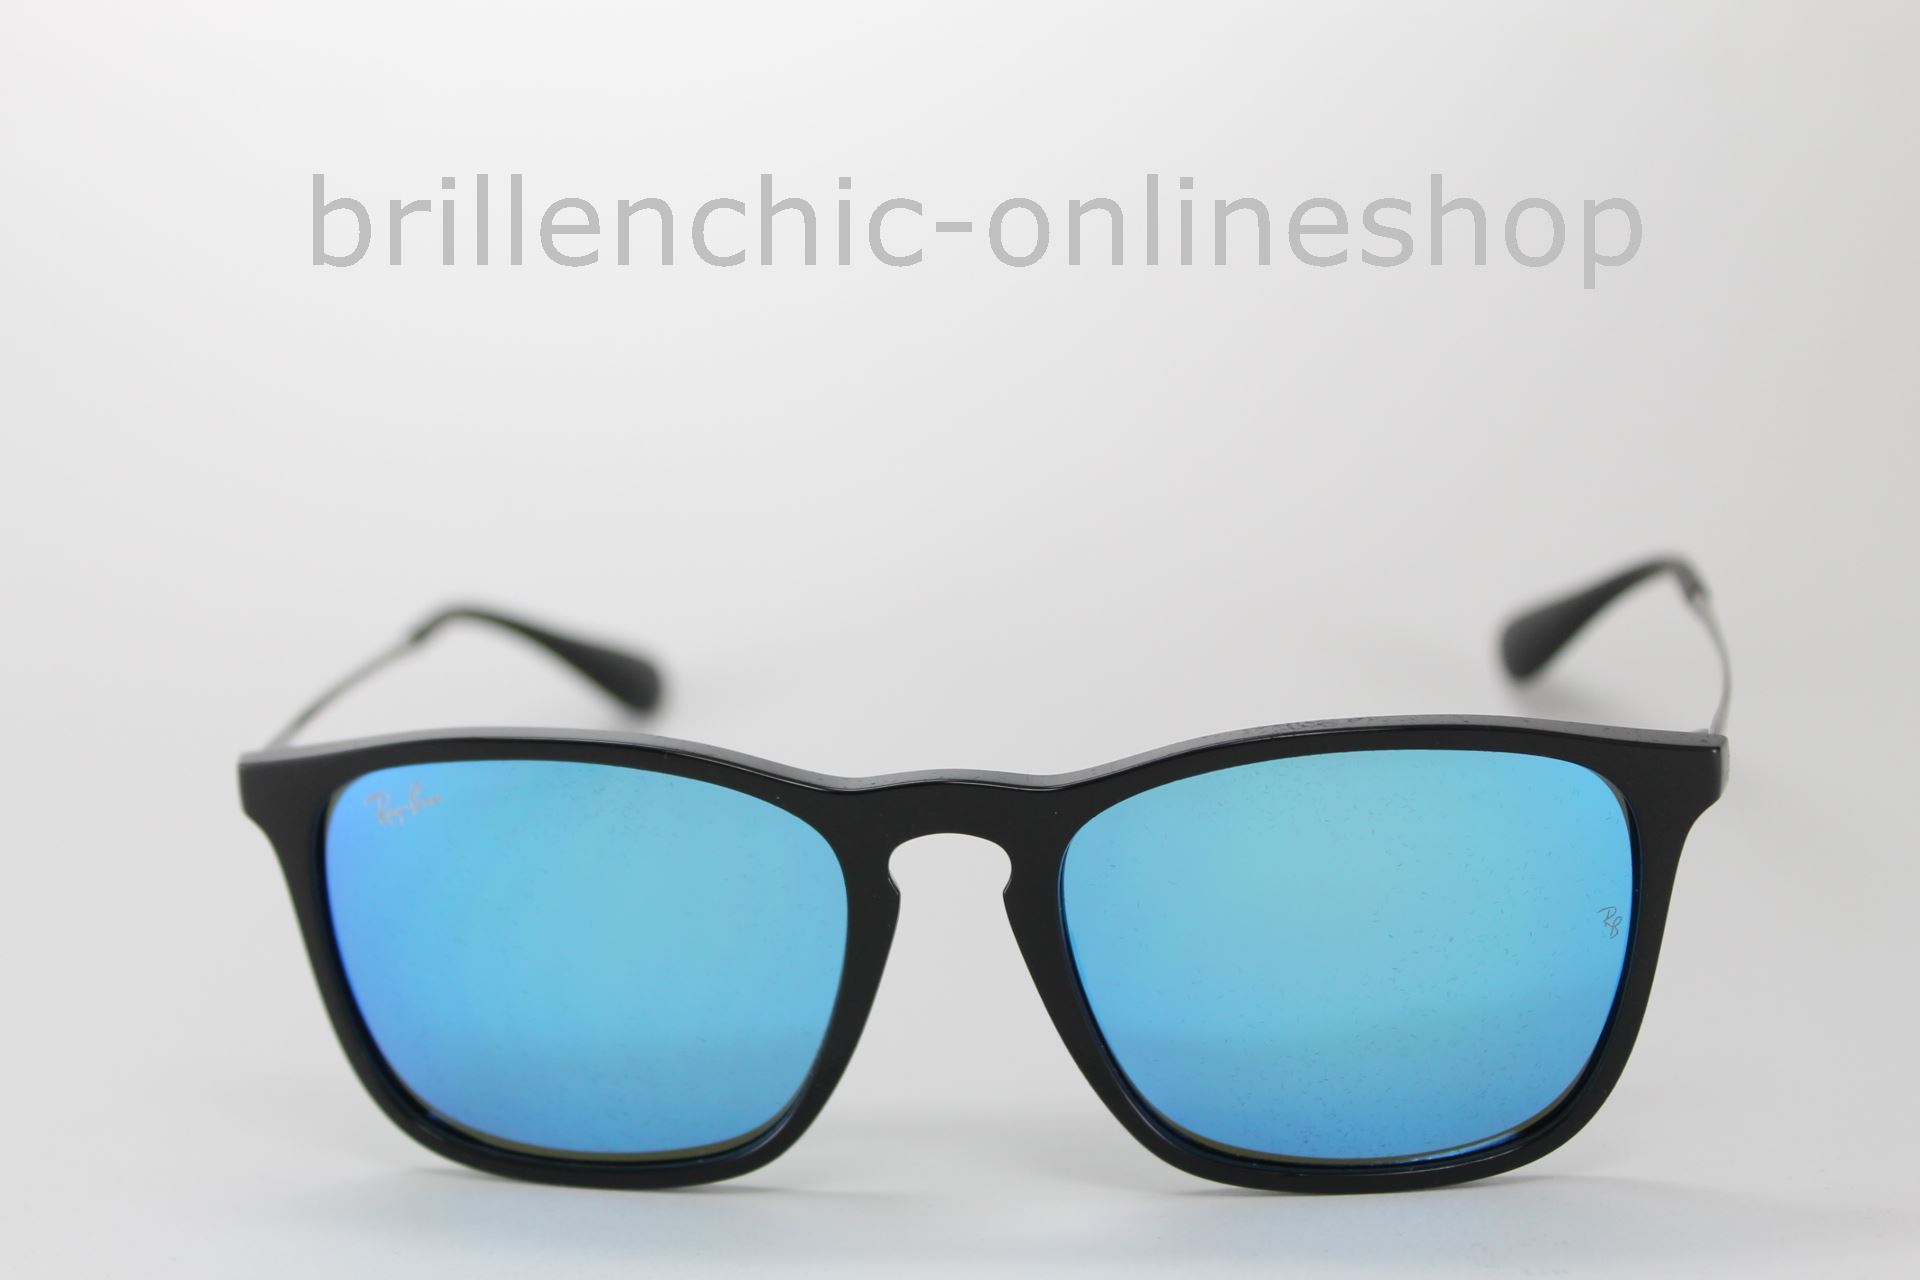 d8555192242 Brillenchic-onlineshop in Berlin - Ray Ban CHRIS RB 4187 601 55